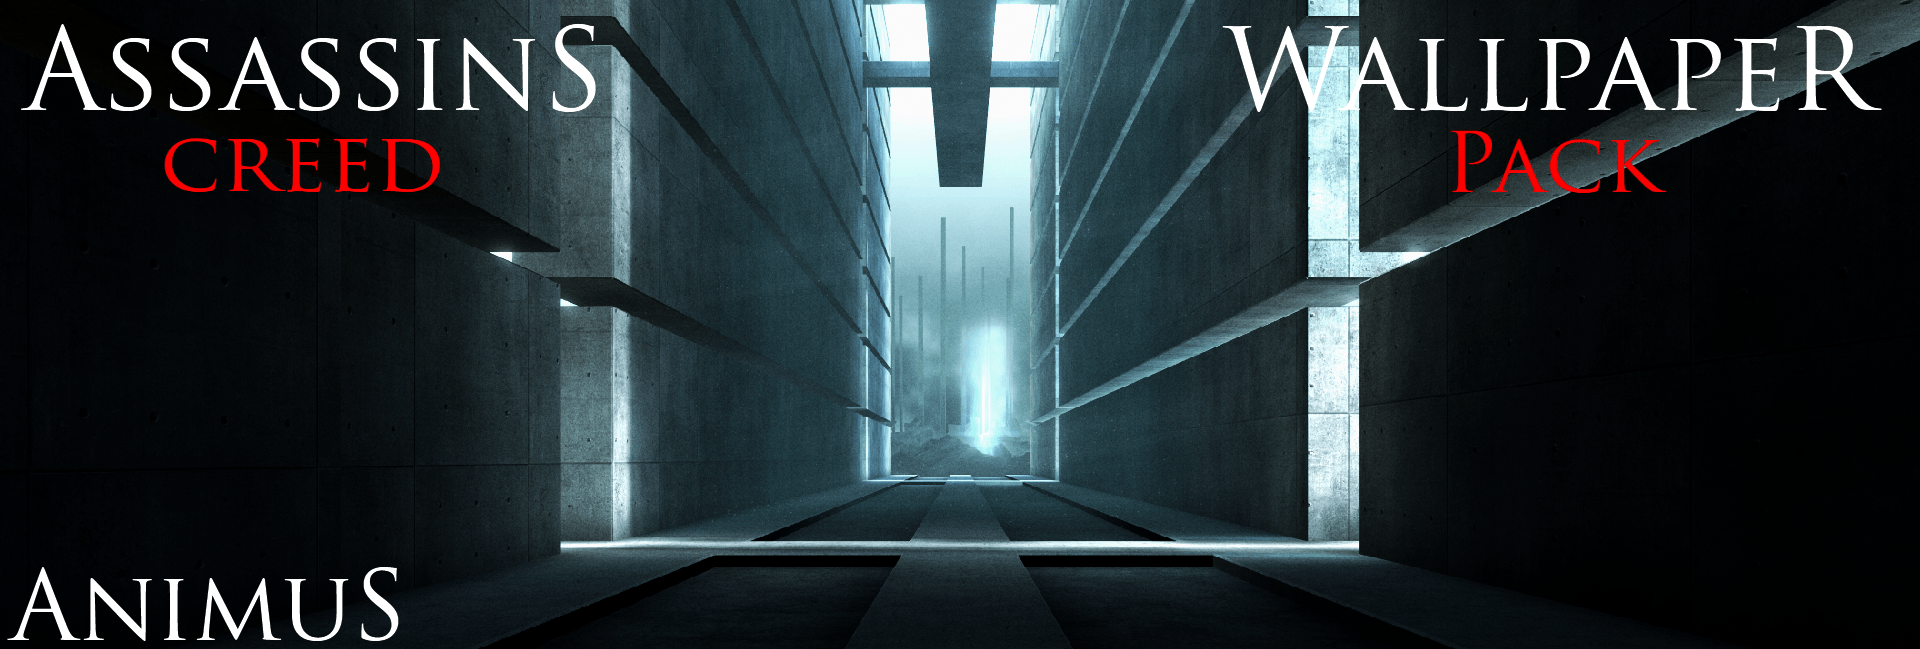 animus wallpapers 2016 wallpaper cave